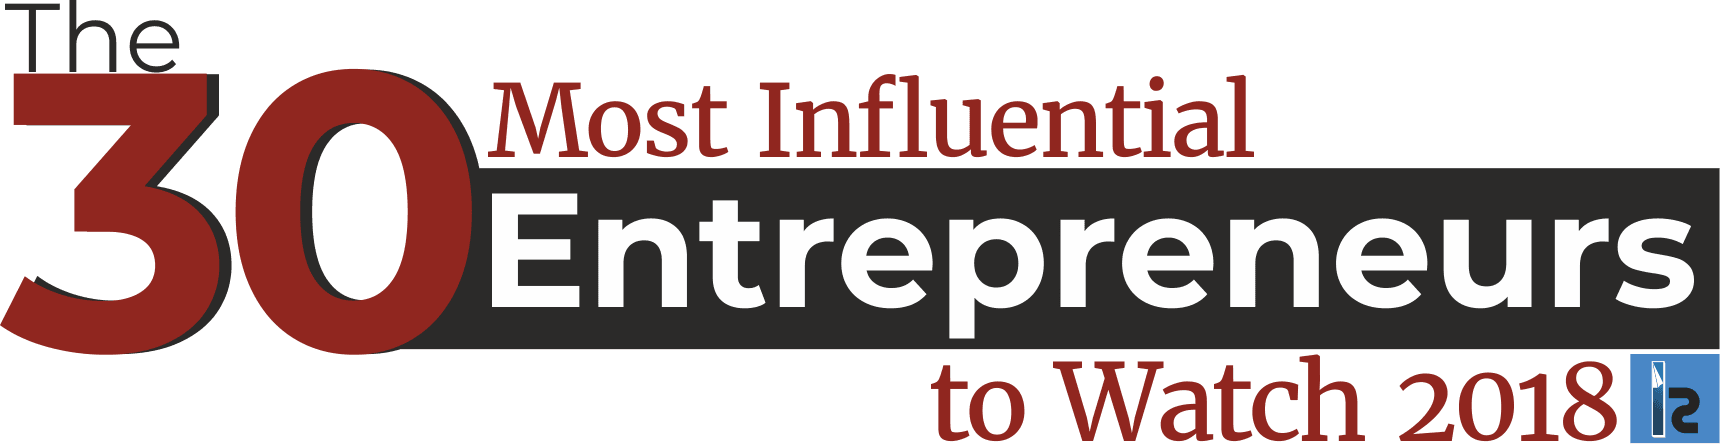 influential entrepreneurs